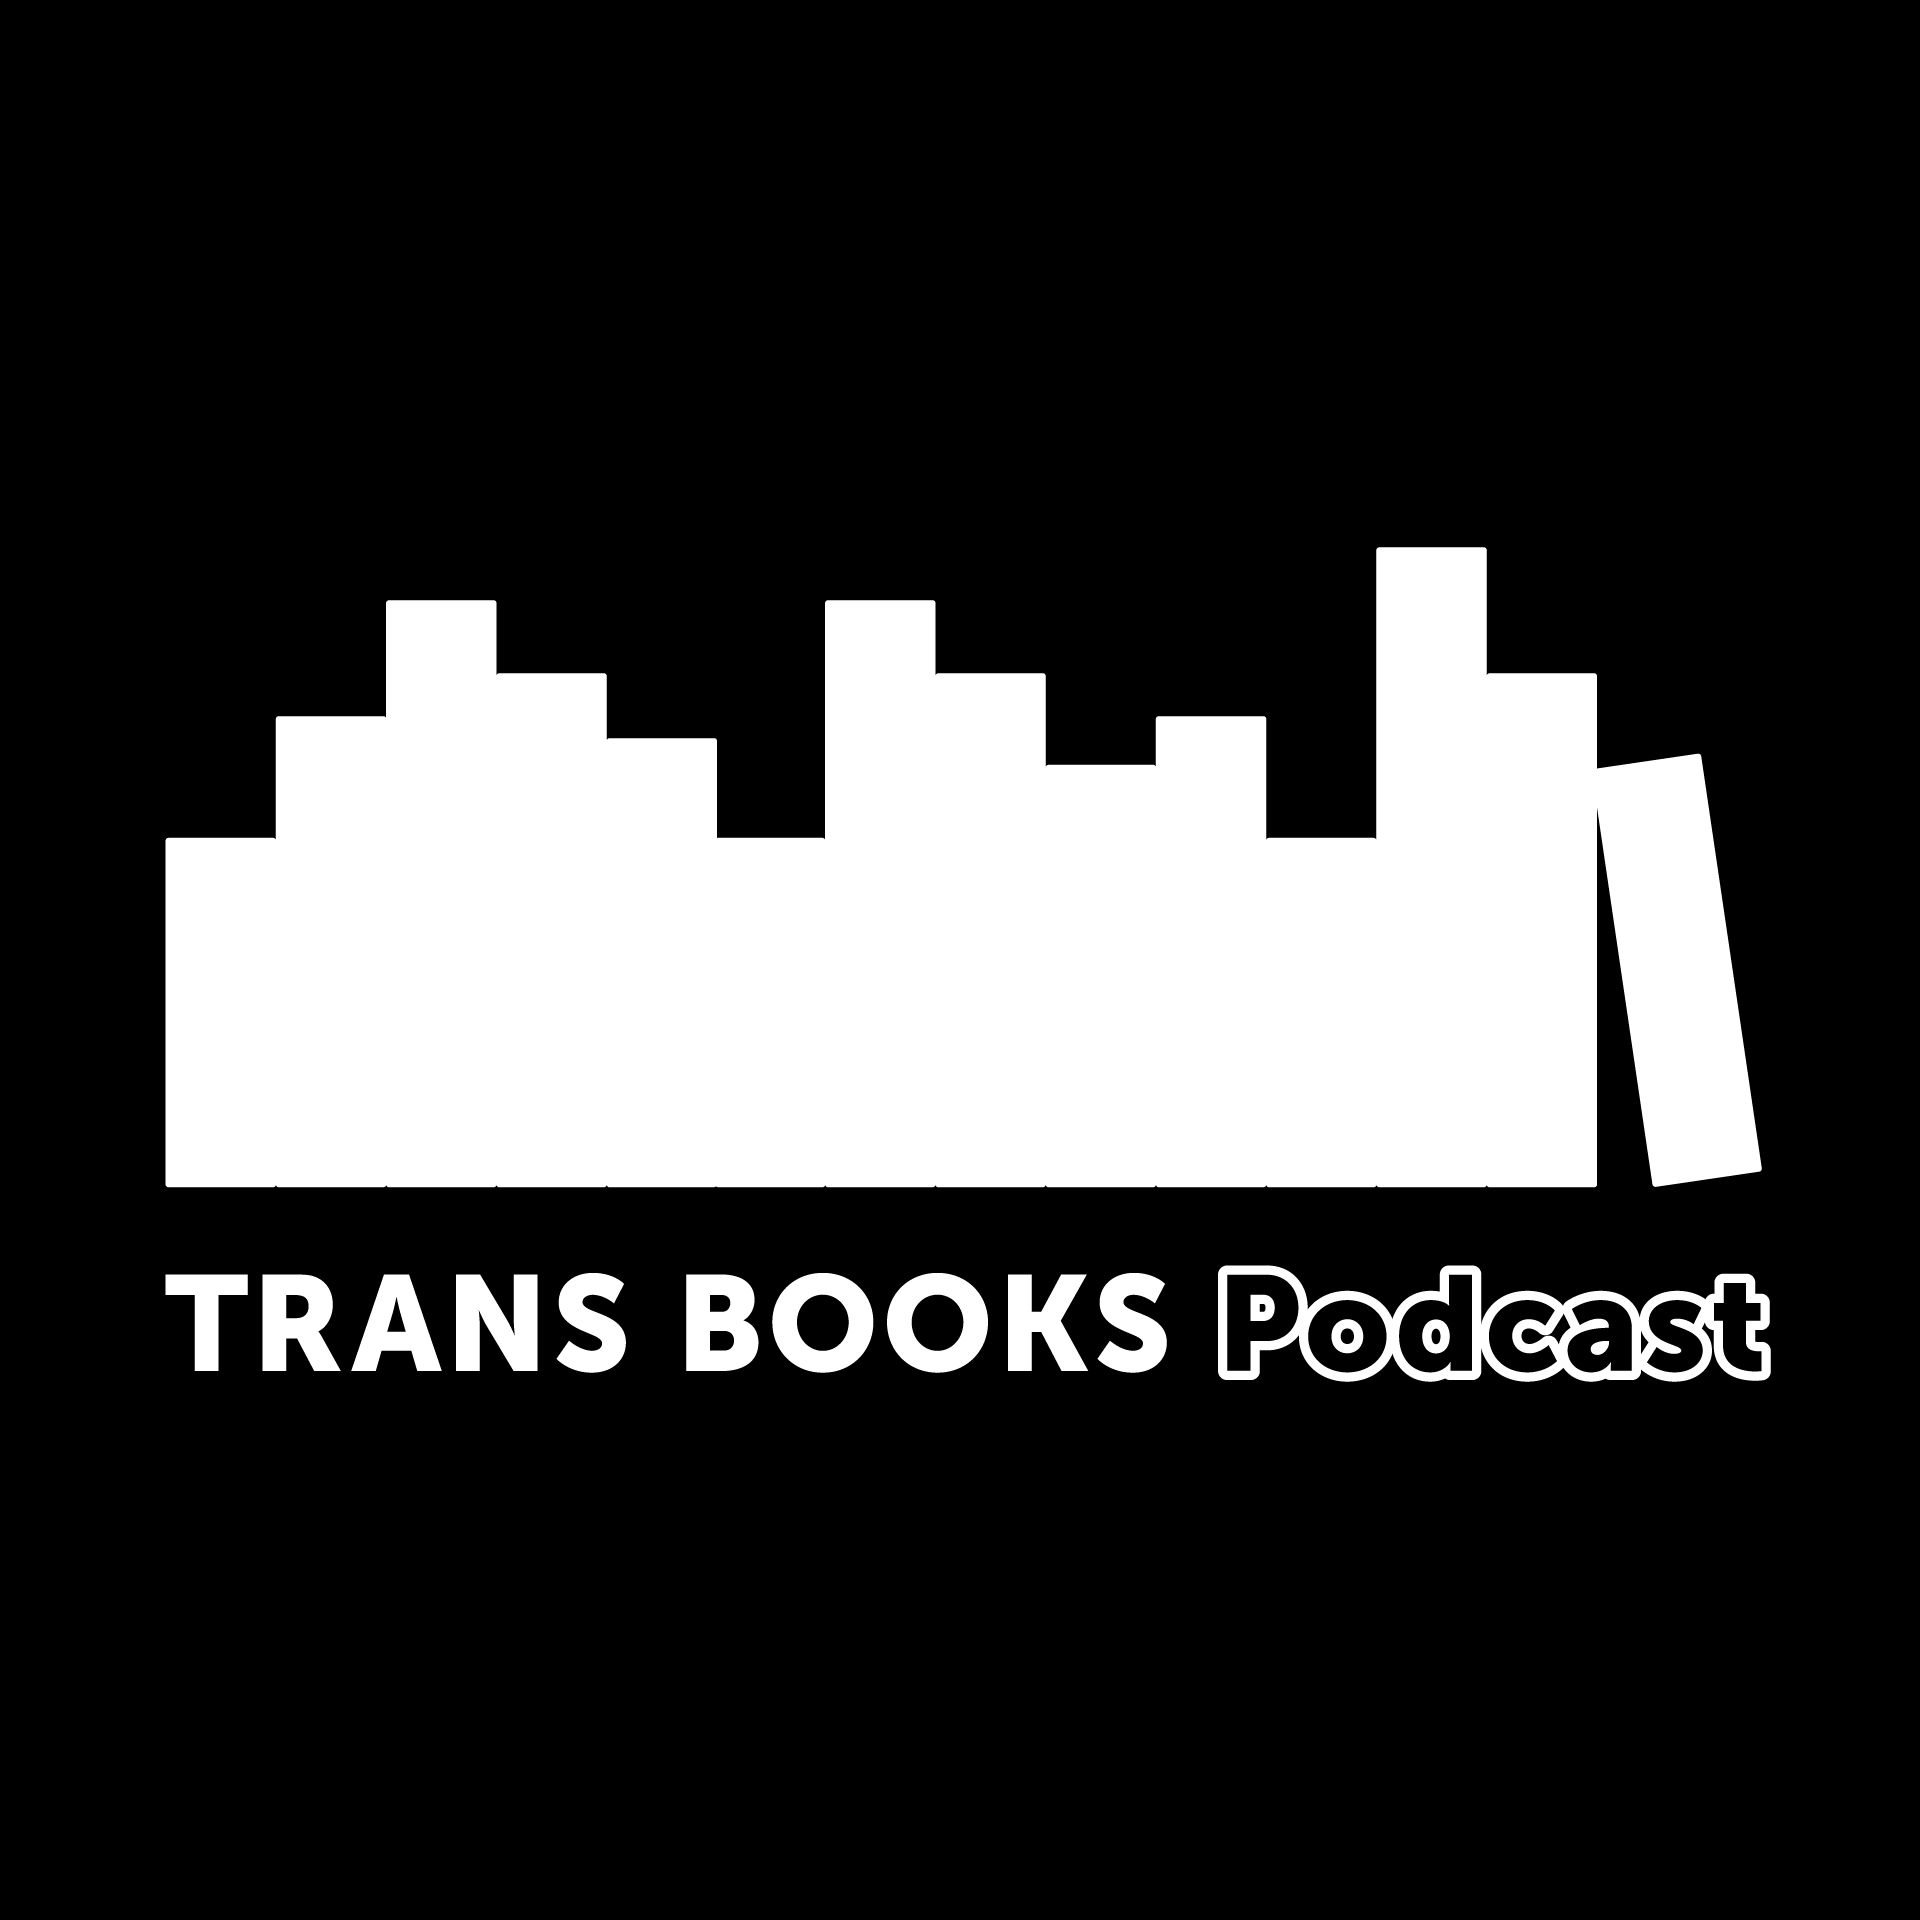 TRANS BOOKS Podcast